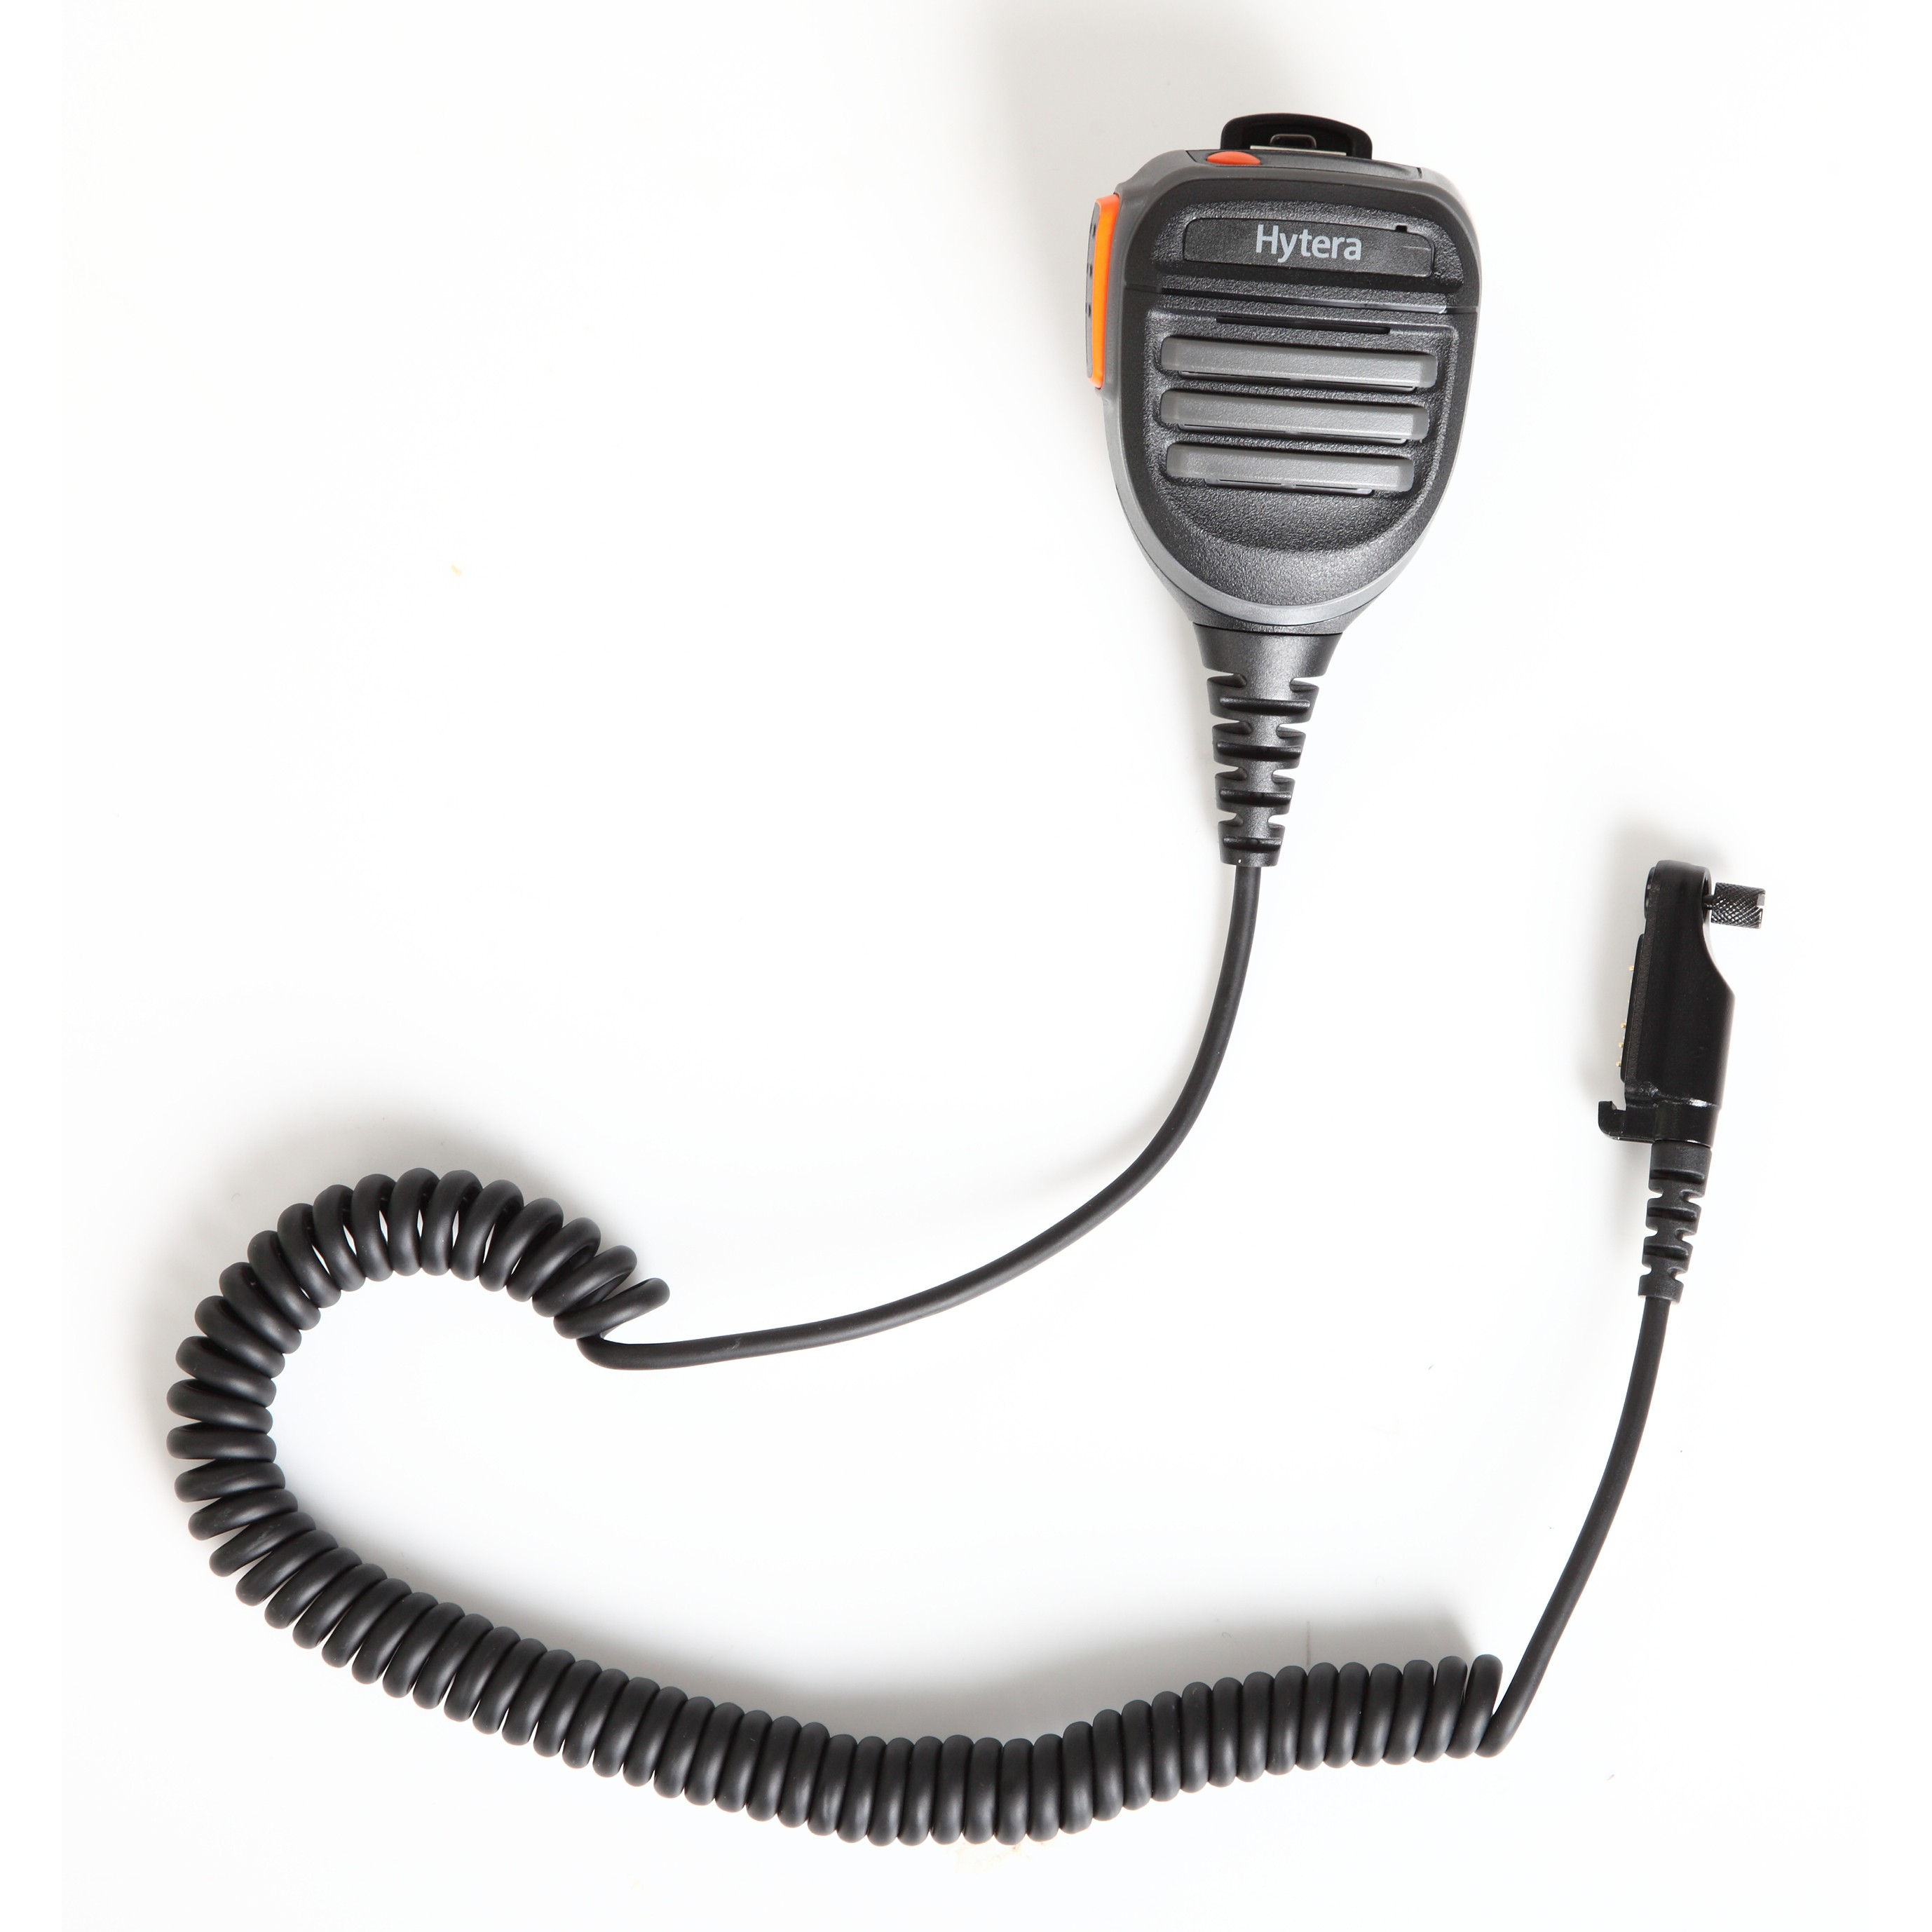 Remote Speaker Microphone with Emergency Button and 3.5mm Audio Jack